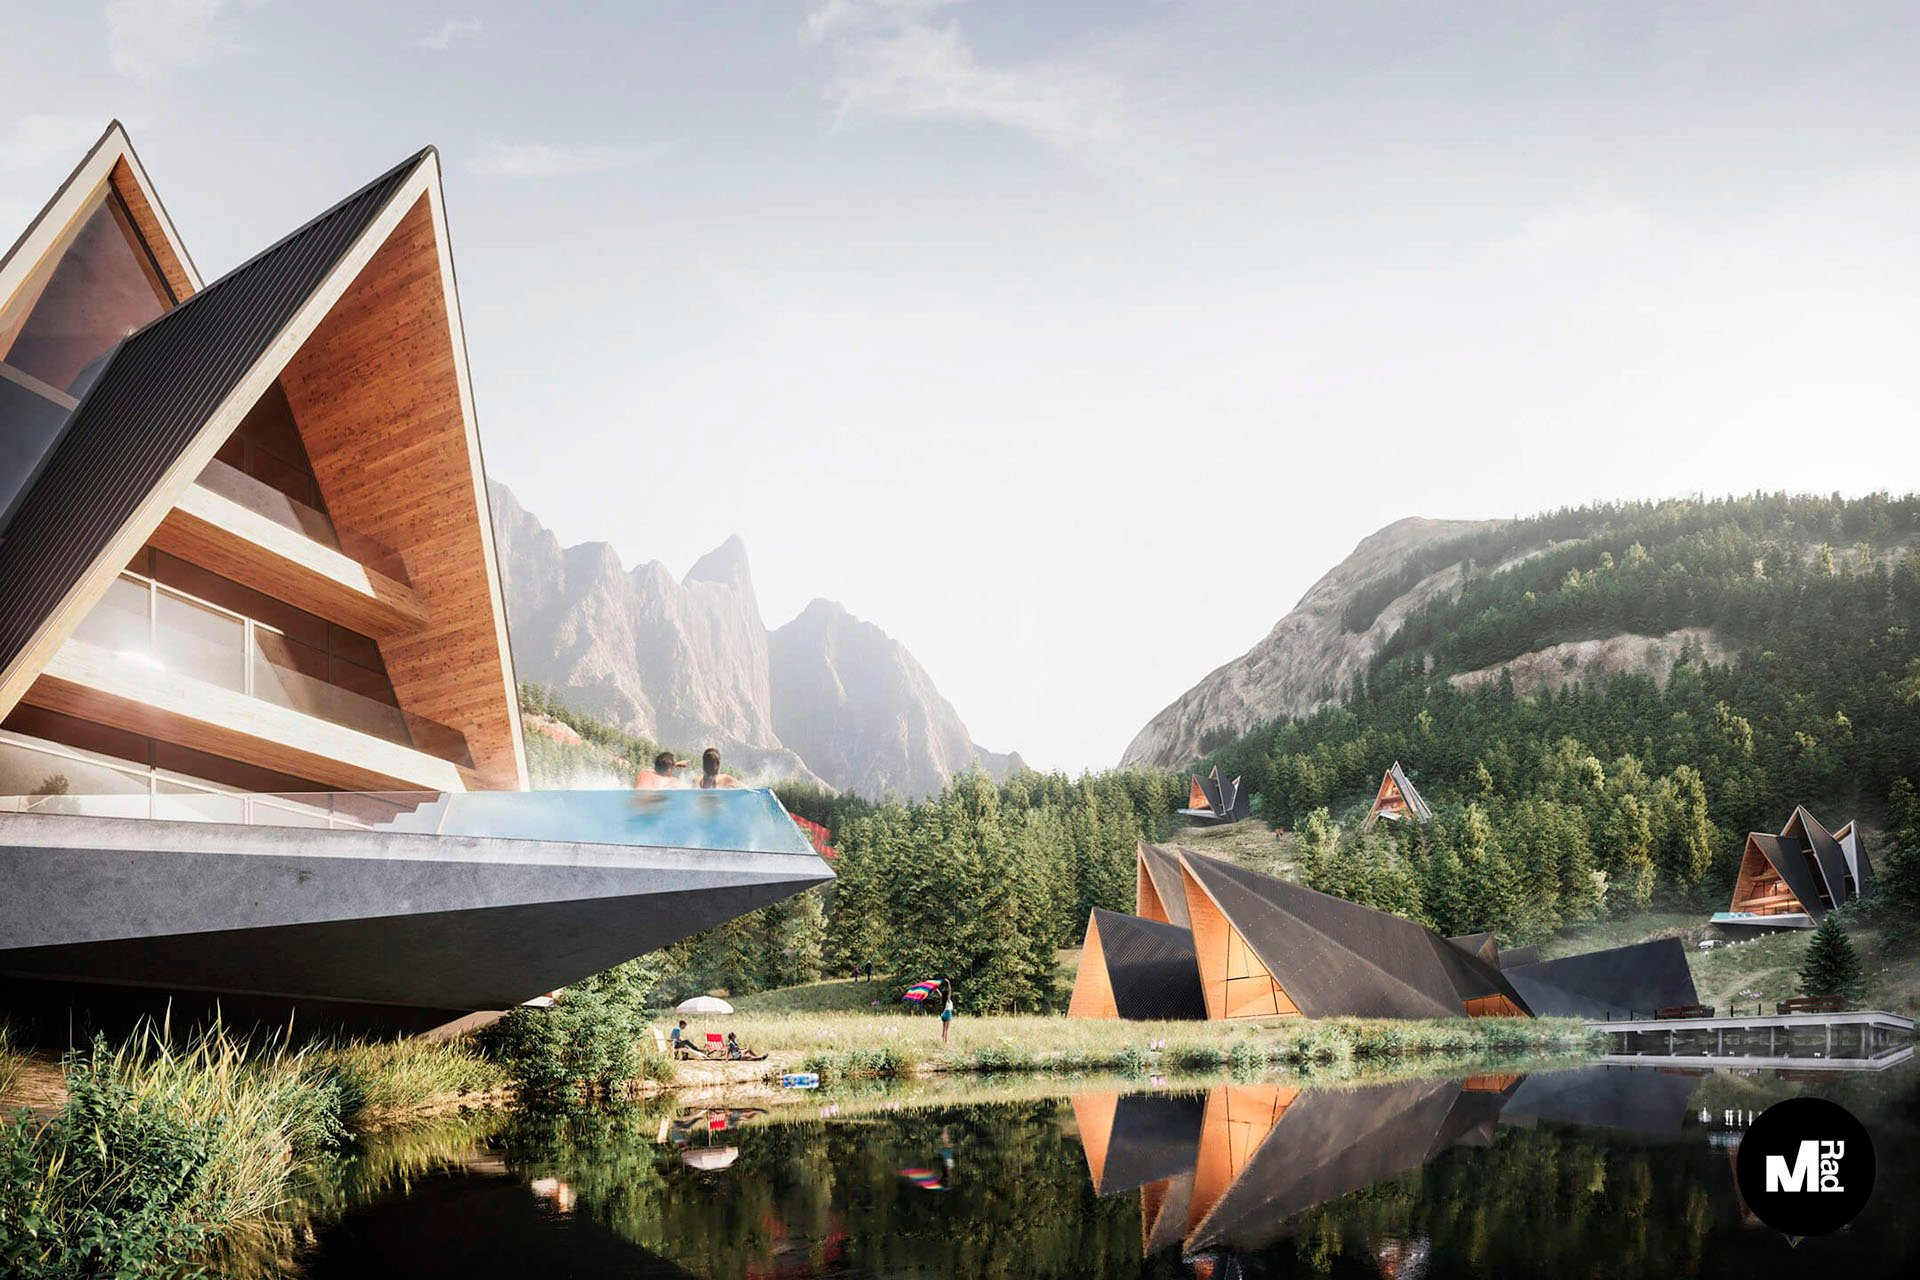 Commercial Exterior Rendering of a Mountain Resort